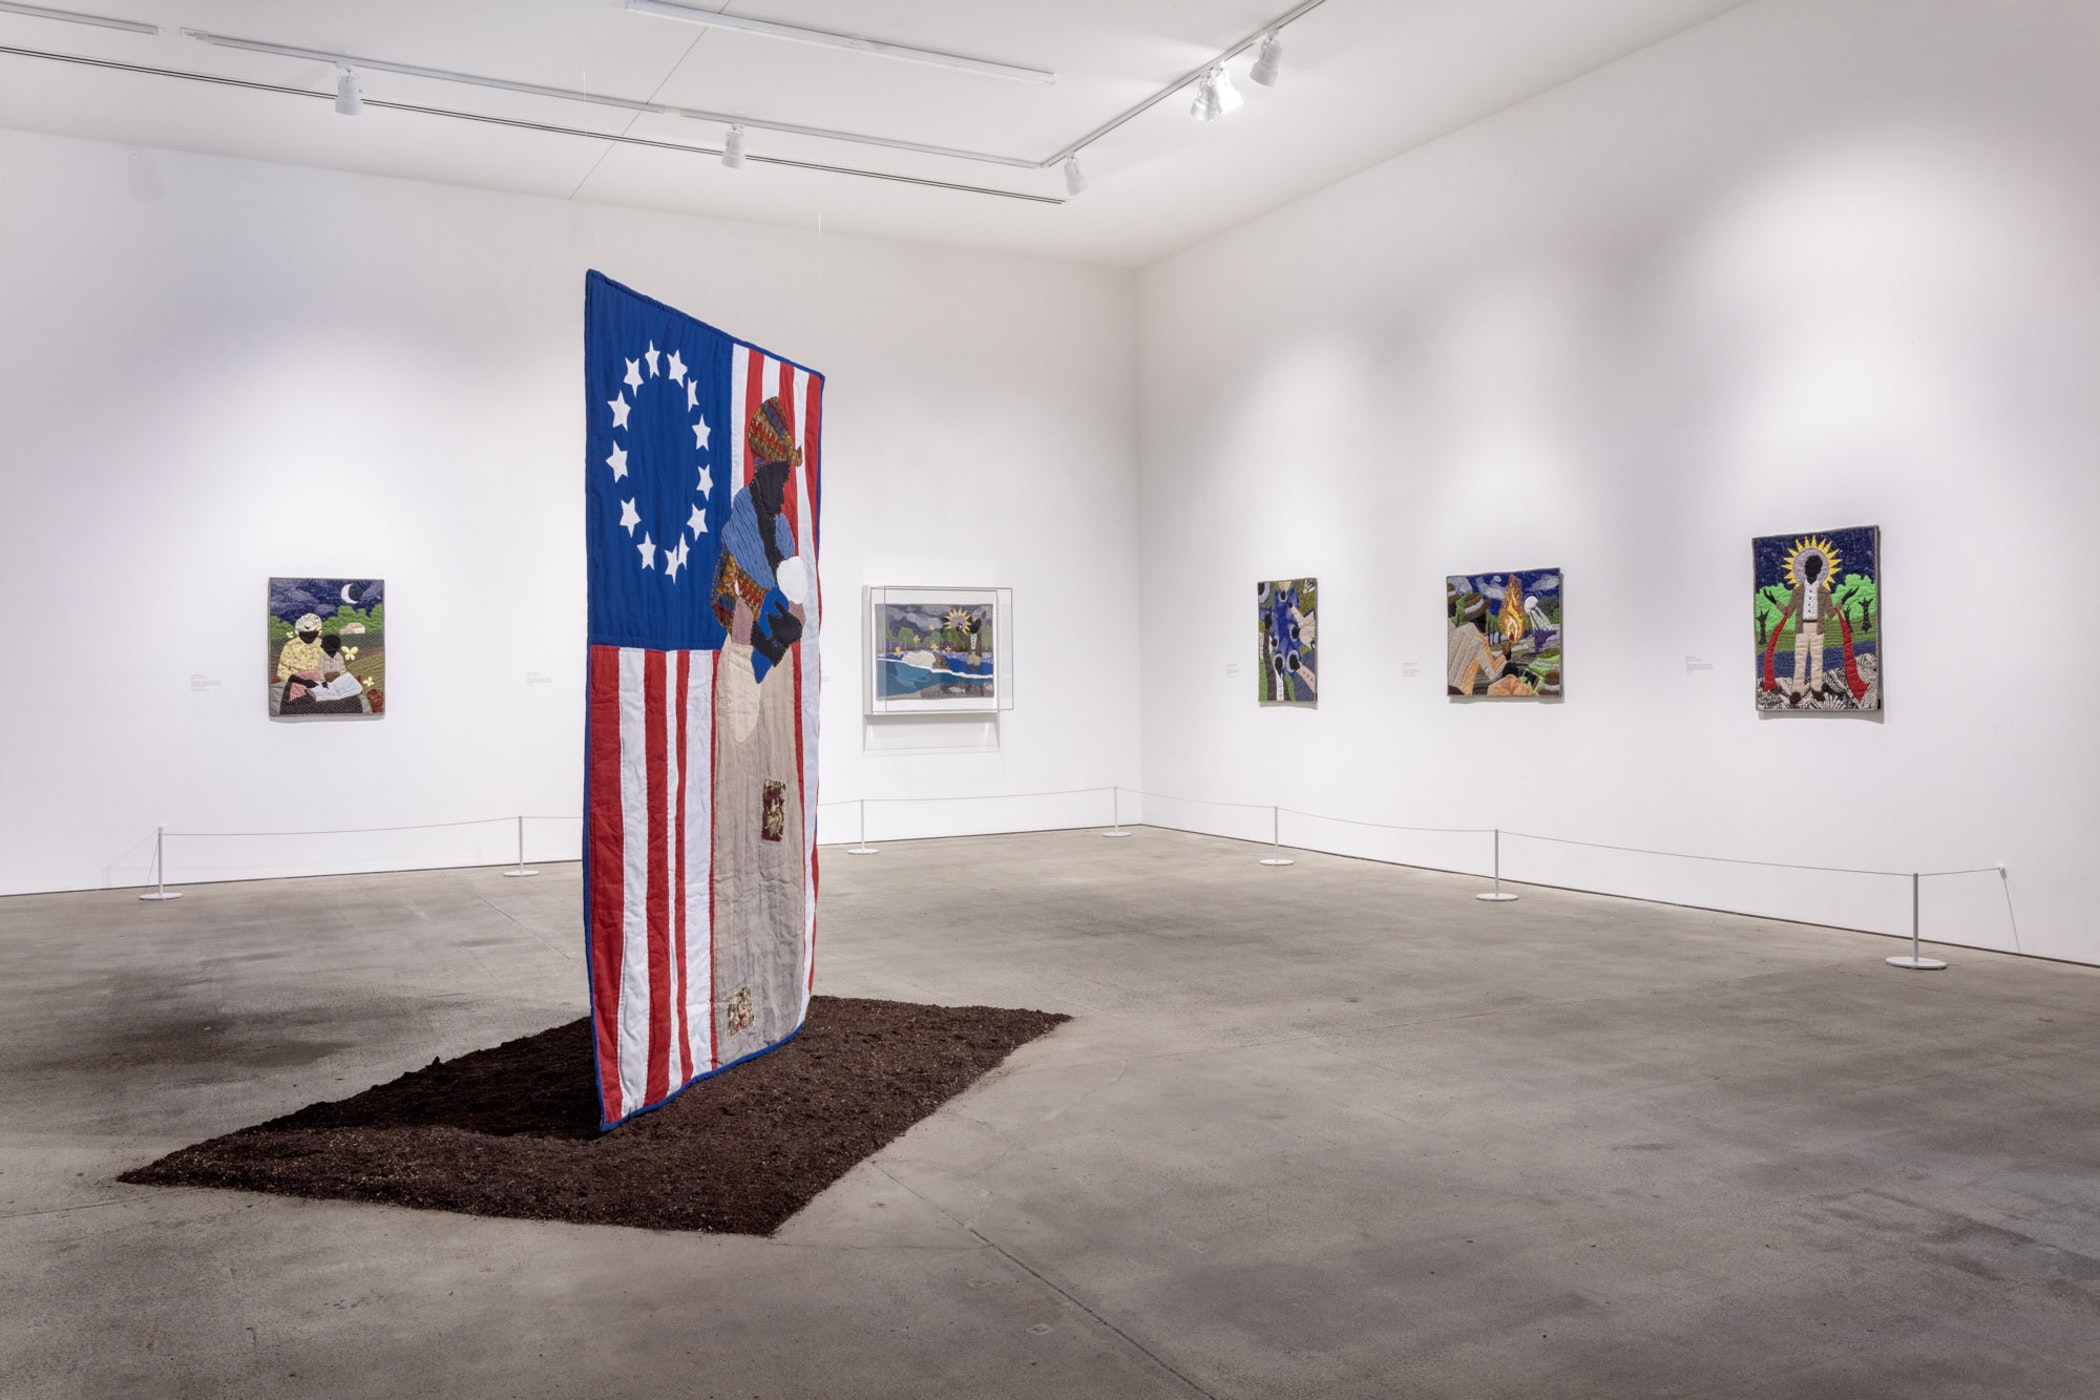 Installation view of Stephen Towns: Rumination and a Reckoning at Art + Practice. 12 October 2019 - 25 January 2020. Photo by Joshua White.